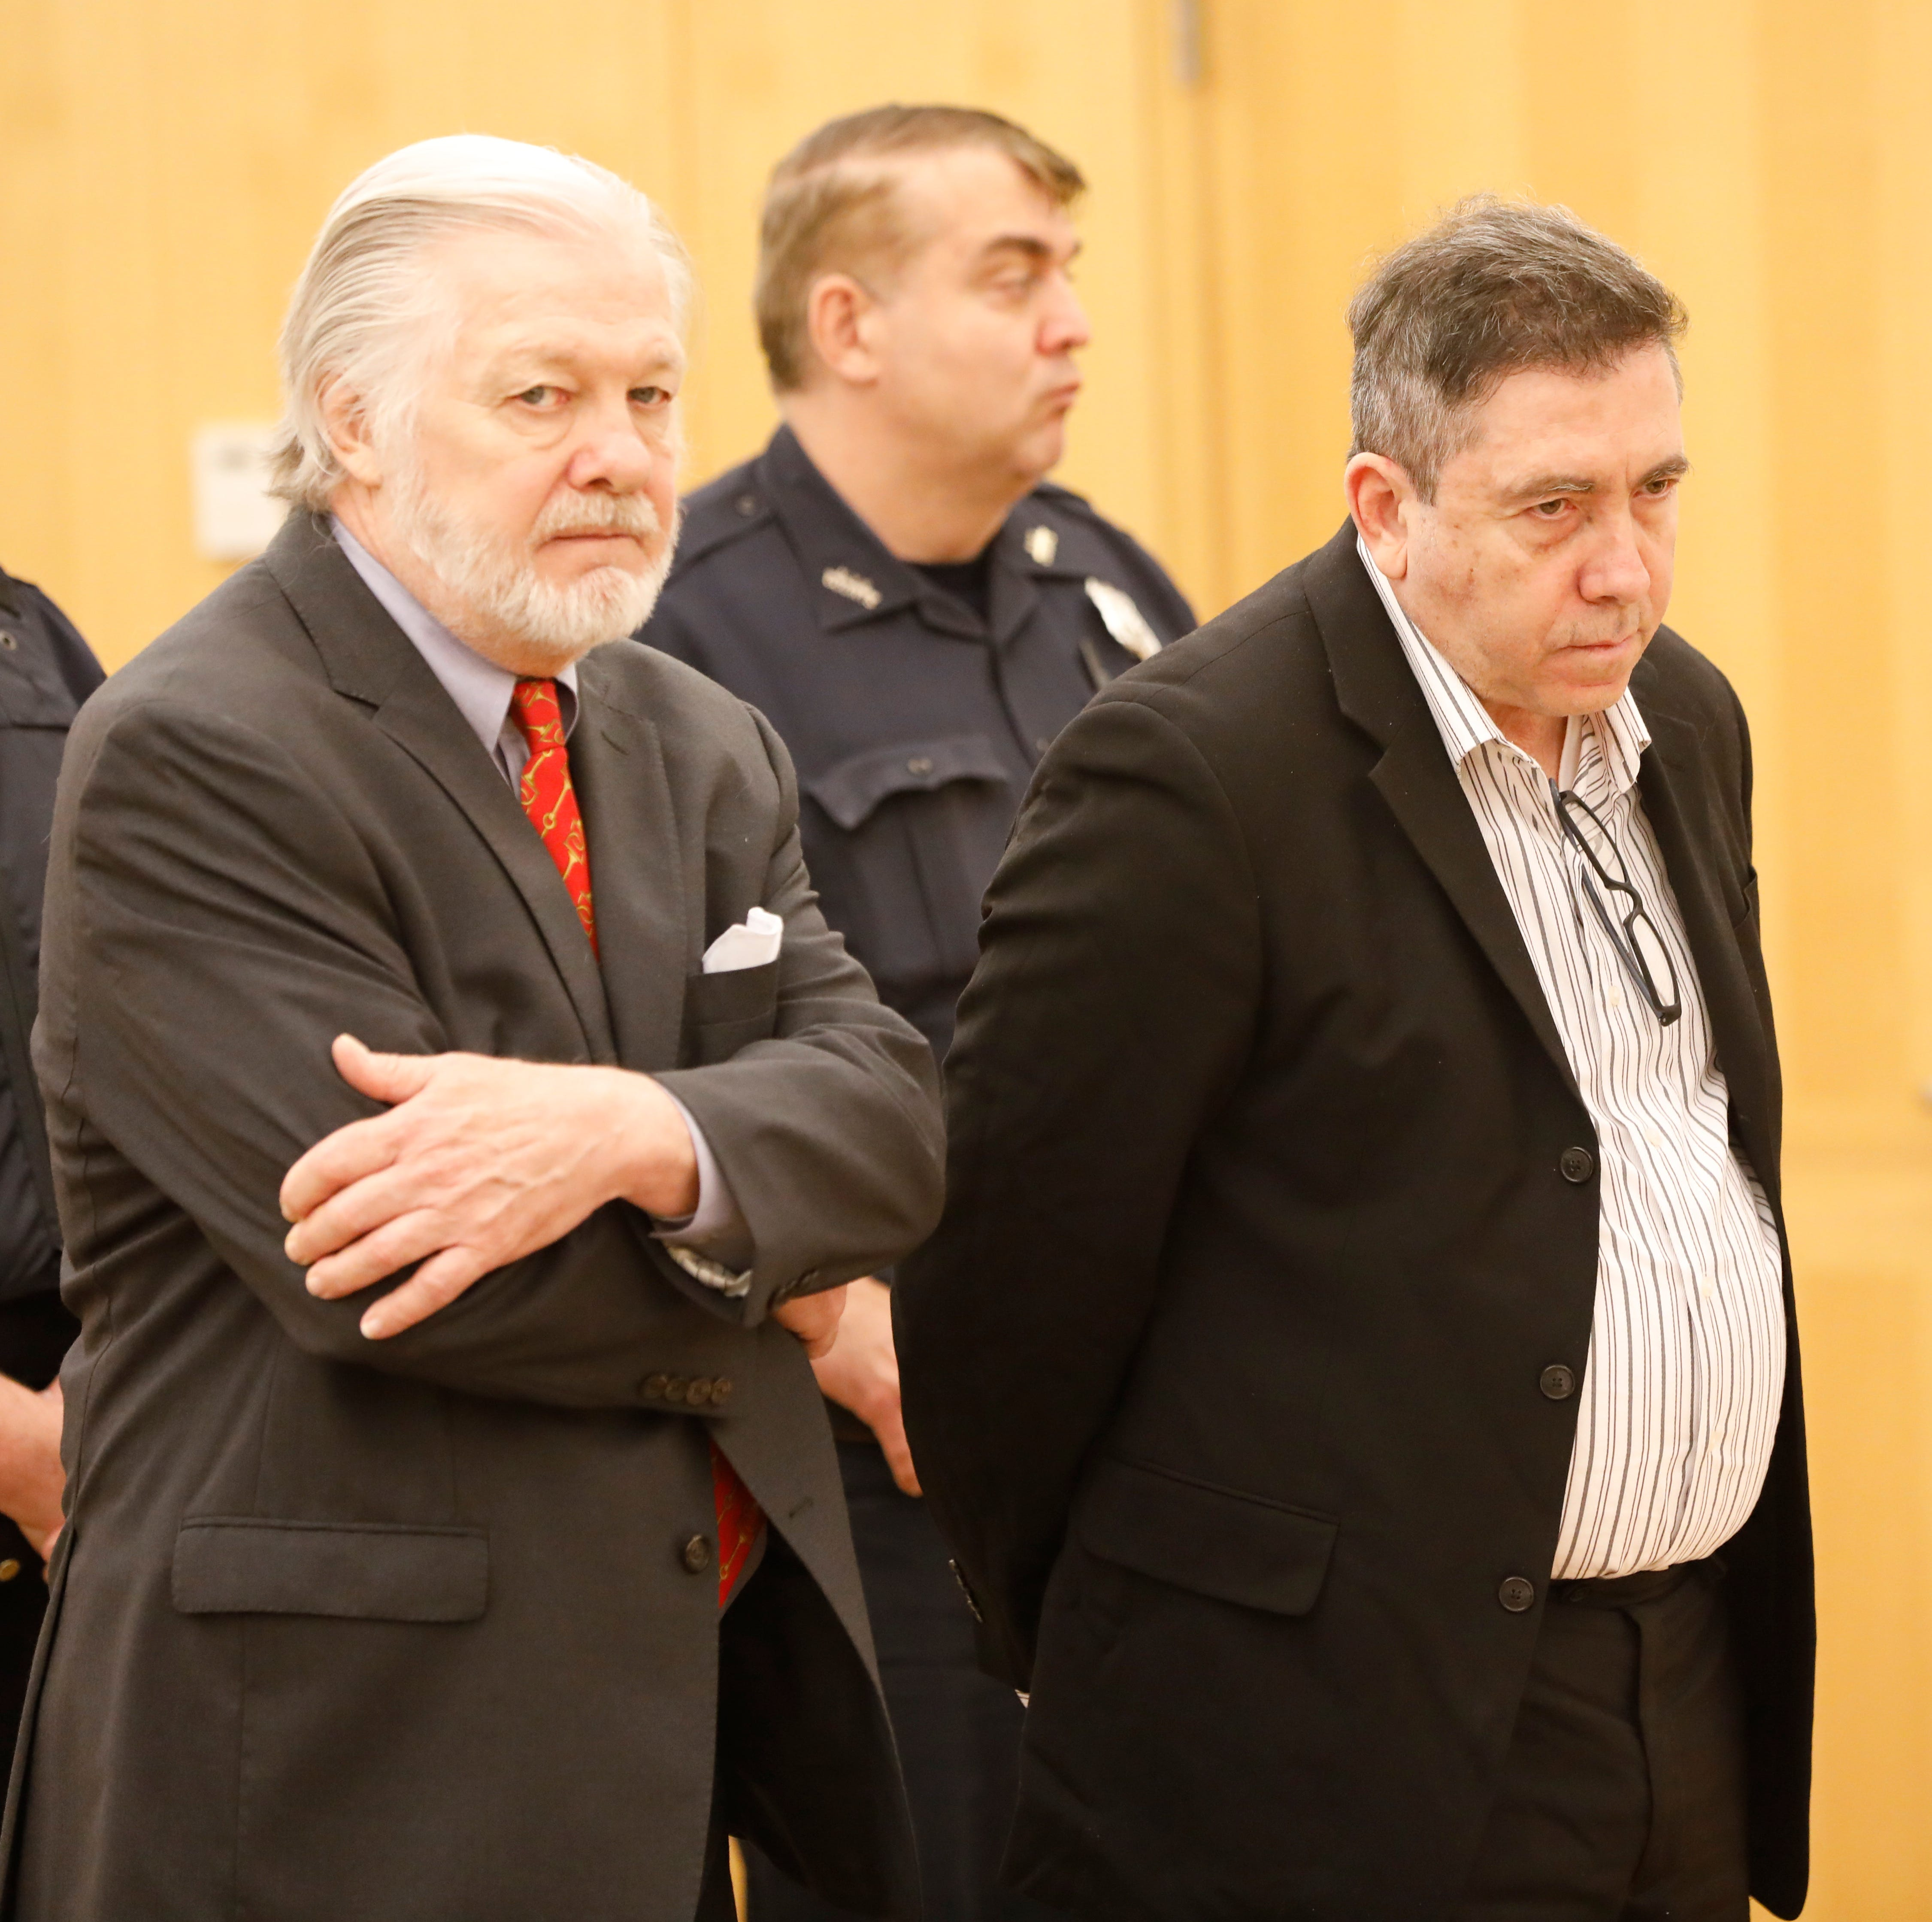 Scarsdale's Julius Reich sentenced for fatally stabbing wife, admits 'unfathomable' damage